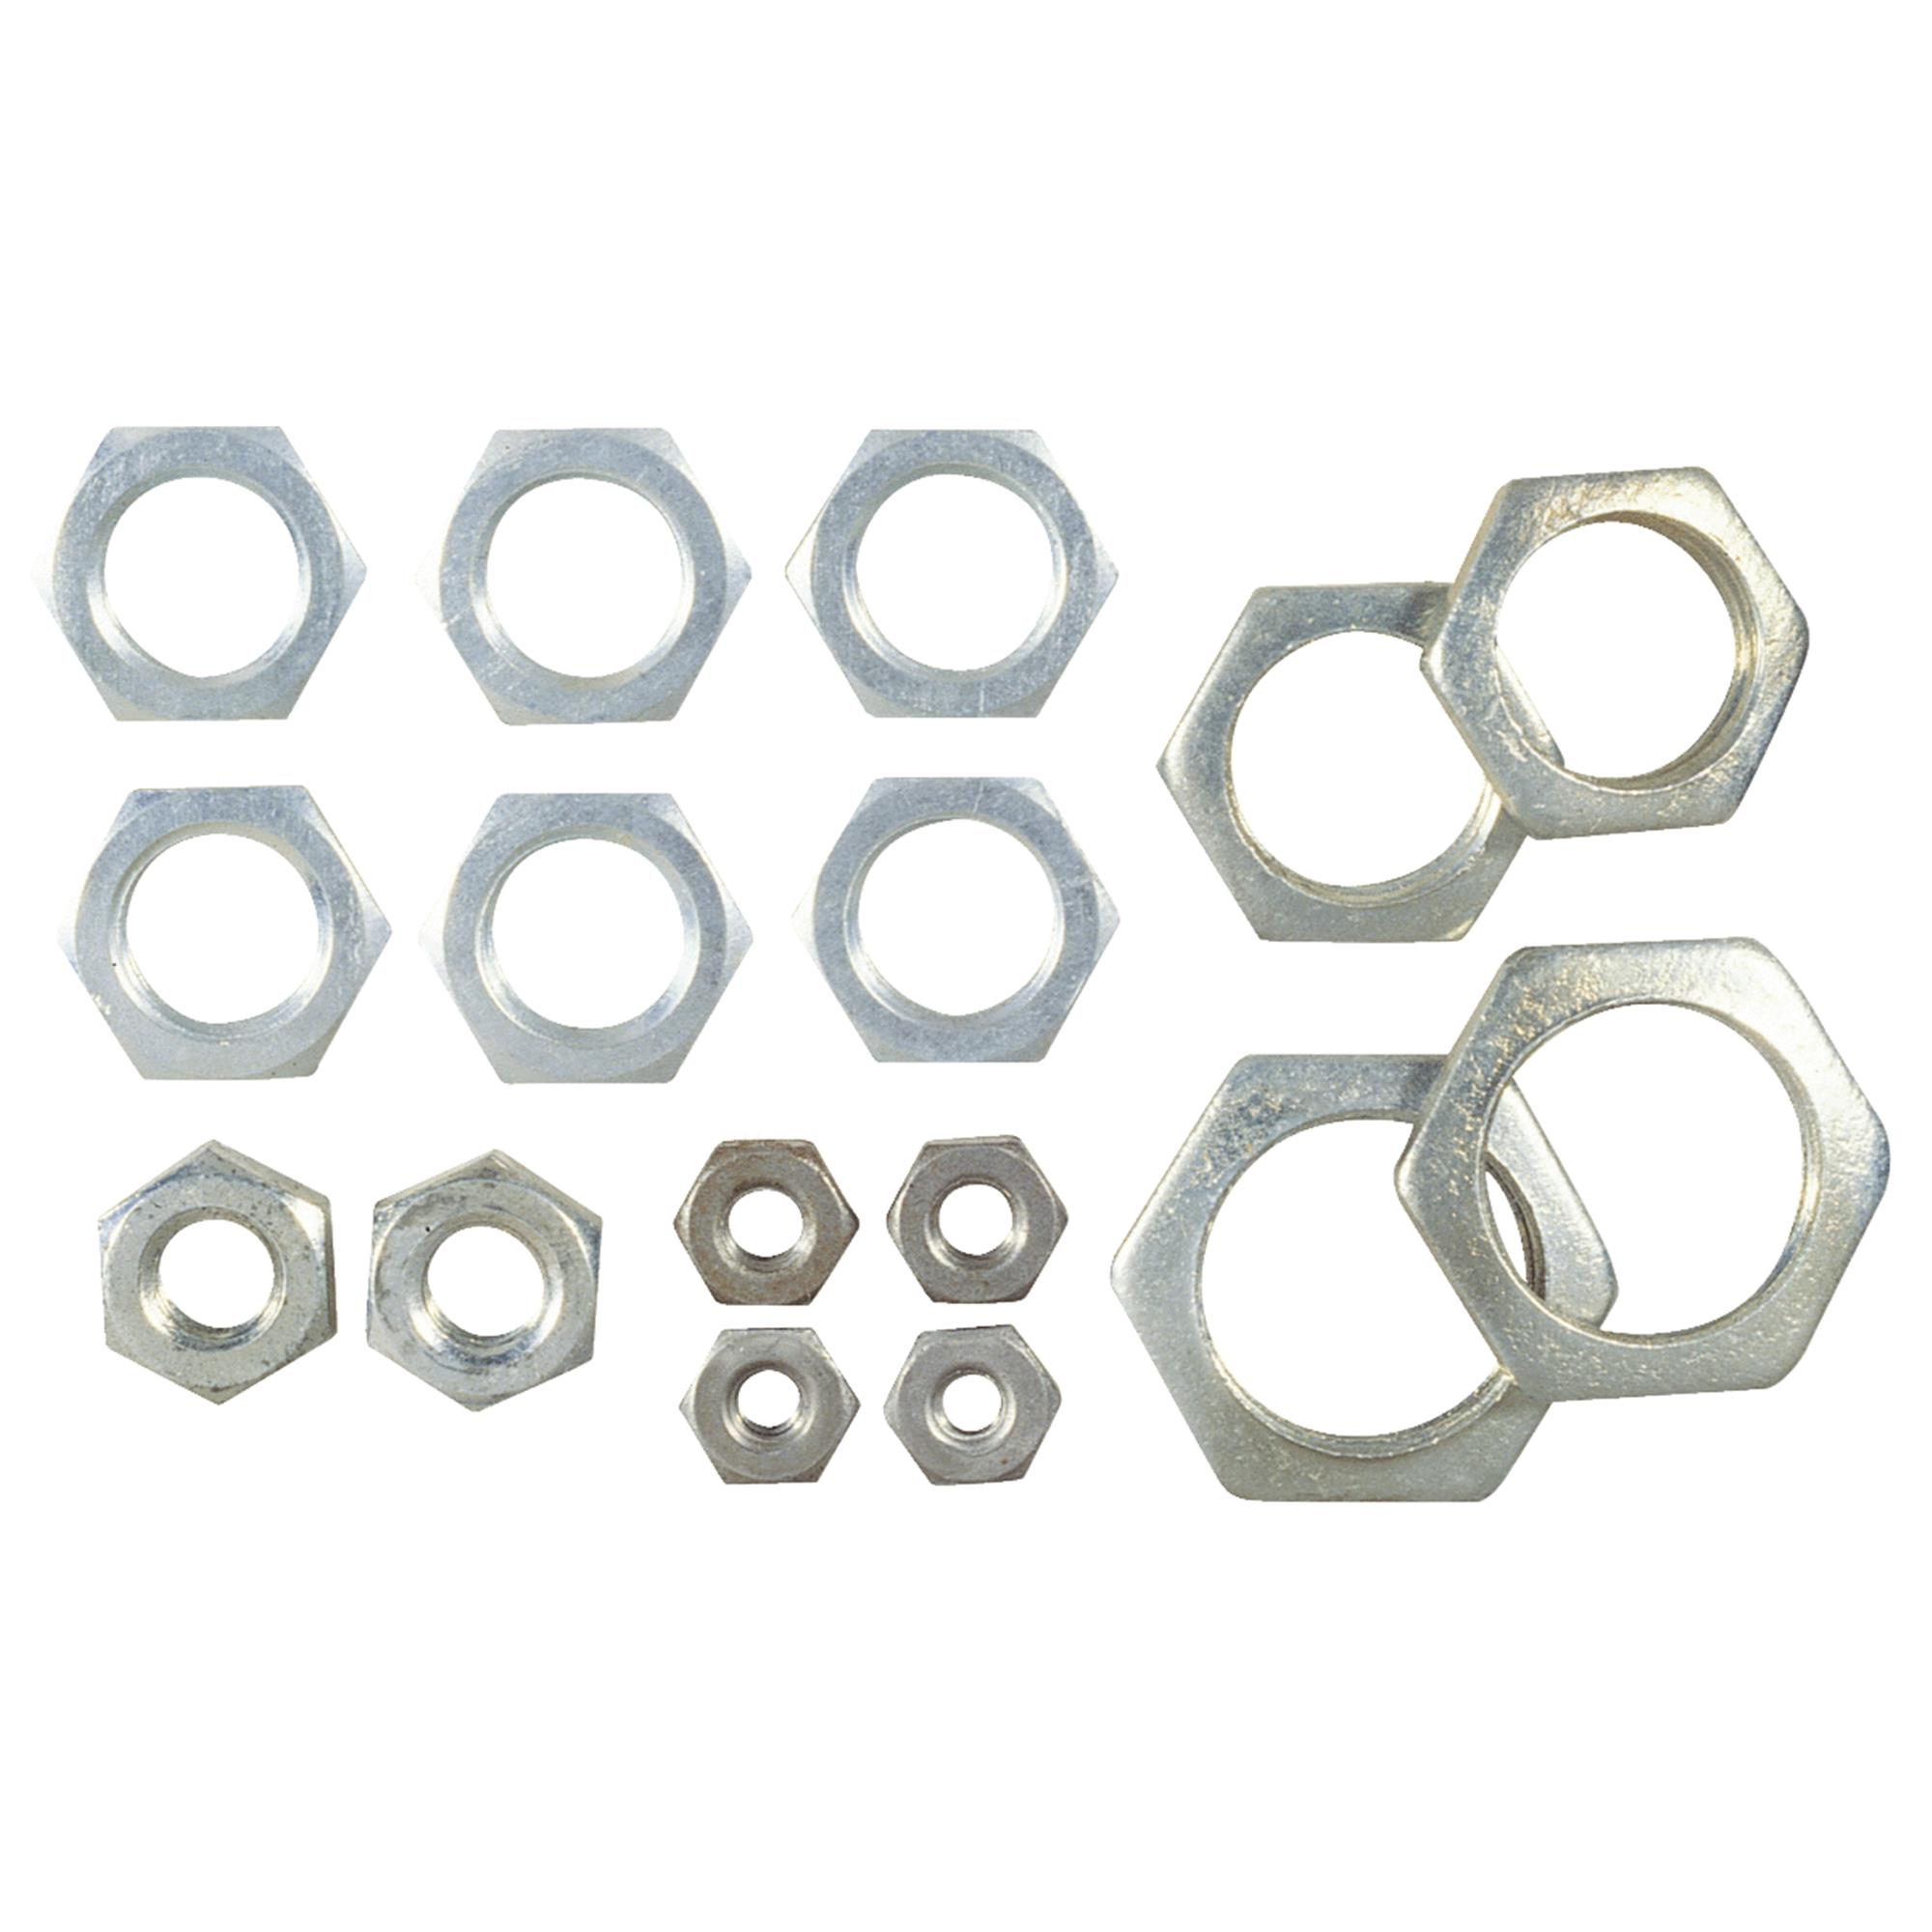 16pc Locknut Assortment